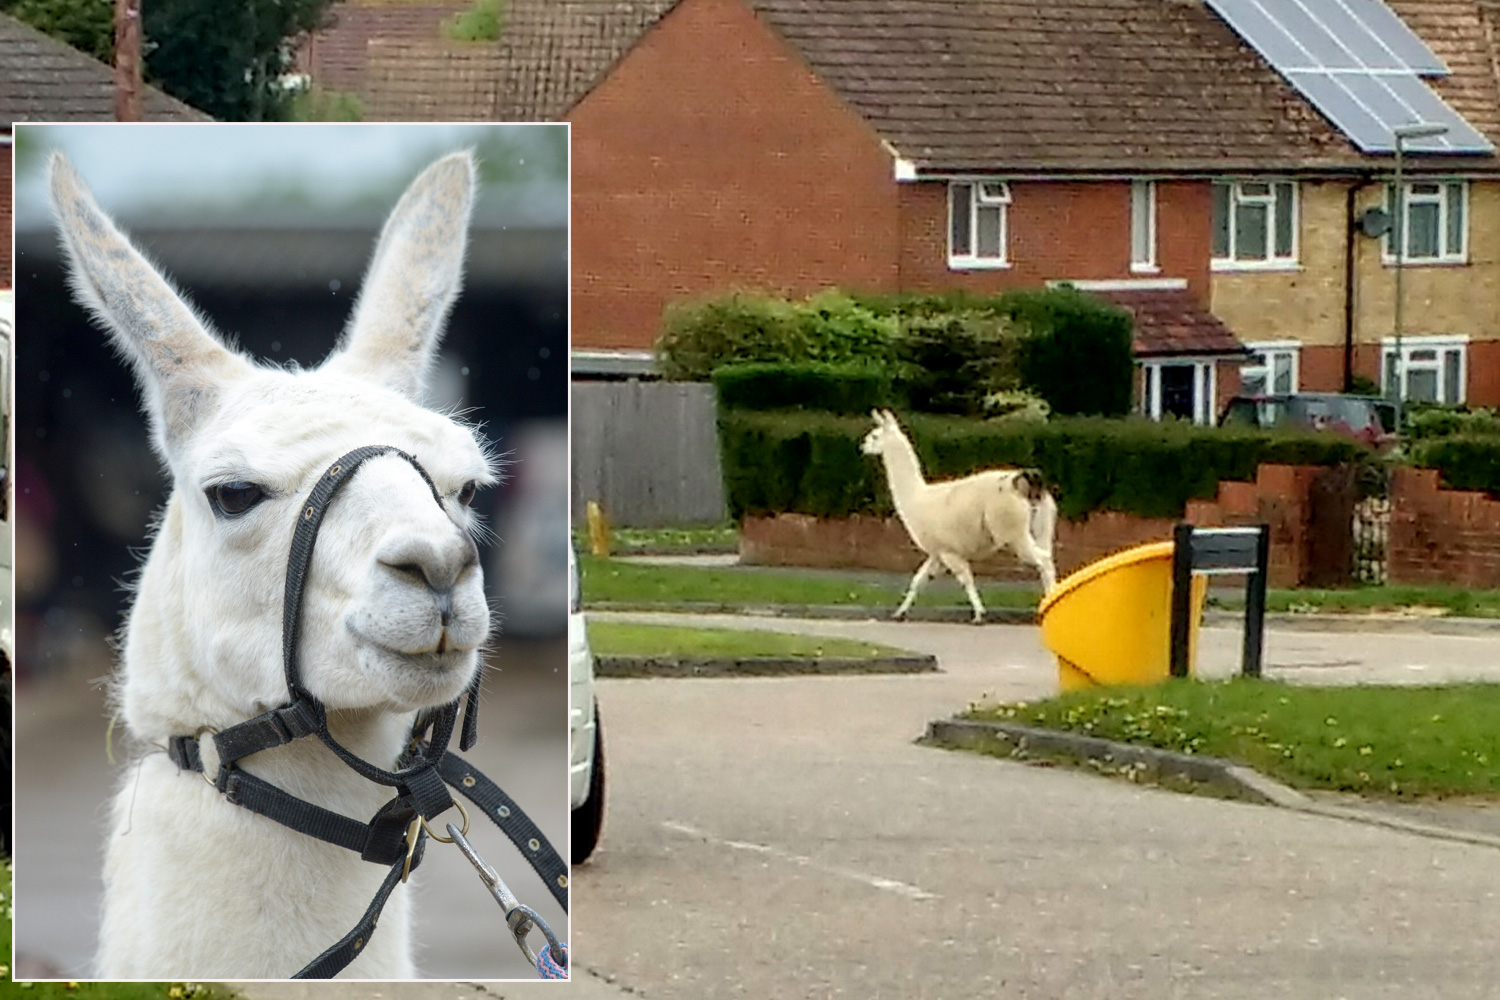 WOMAN RUGBY-TACKLED ESCAPED LLAMA CALLED BRAD PITT